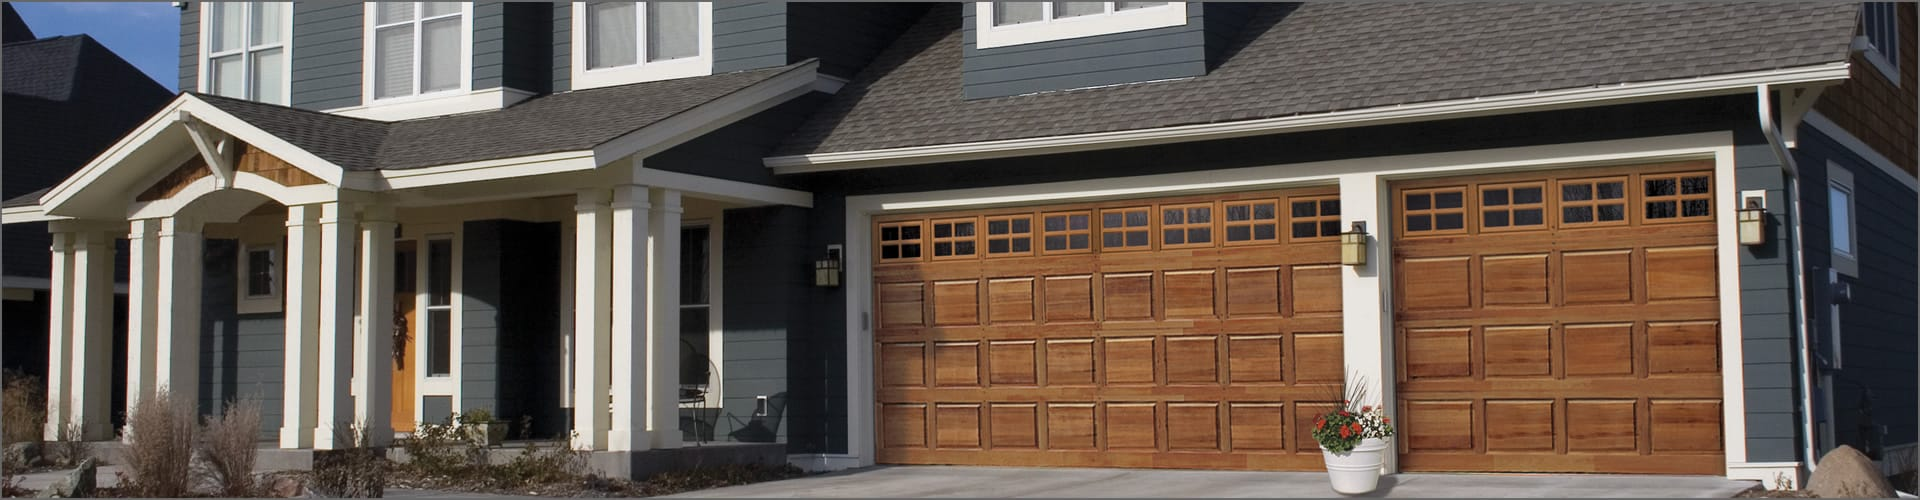 House with wood garage door - Looking For Something A Bit More Detailed Click Here To View Wooden Carriage House Doors